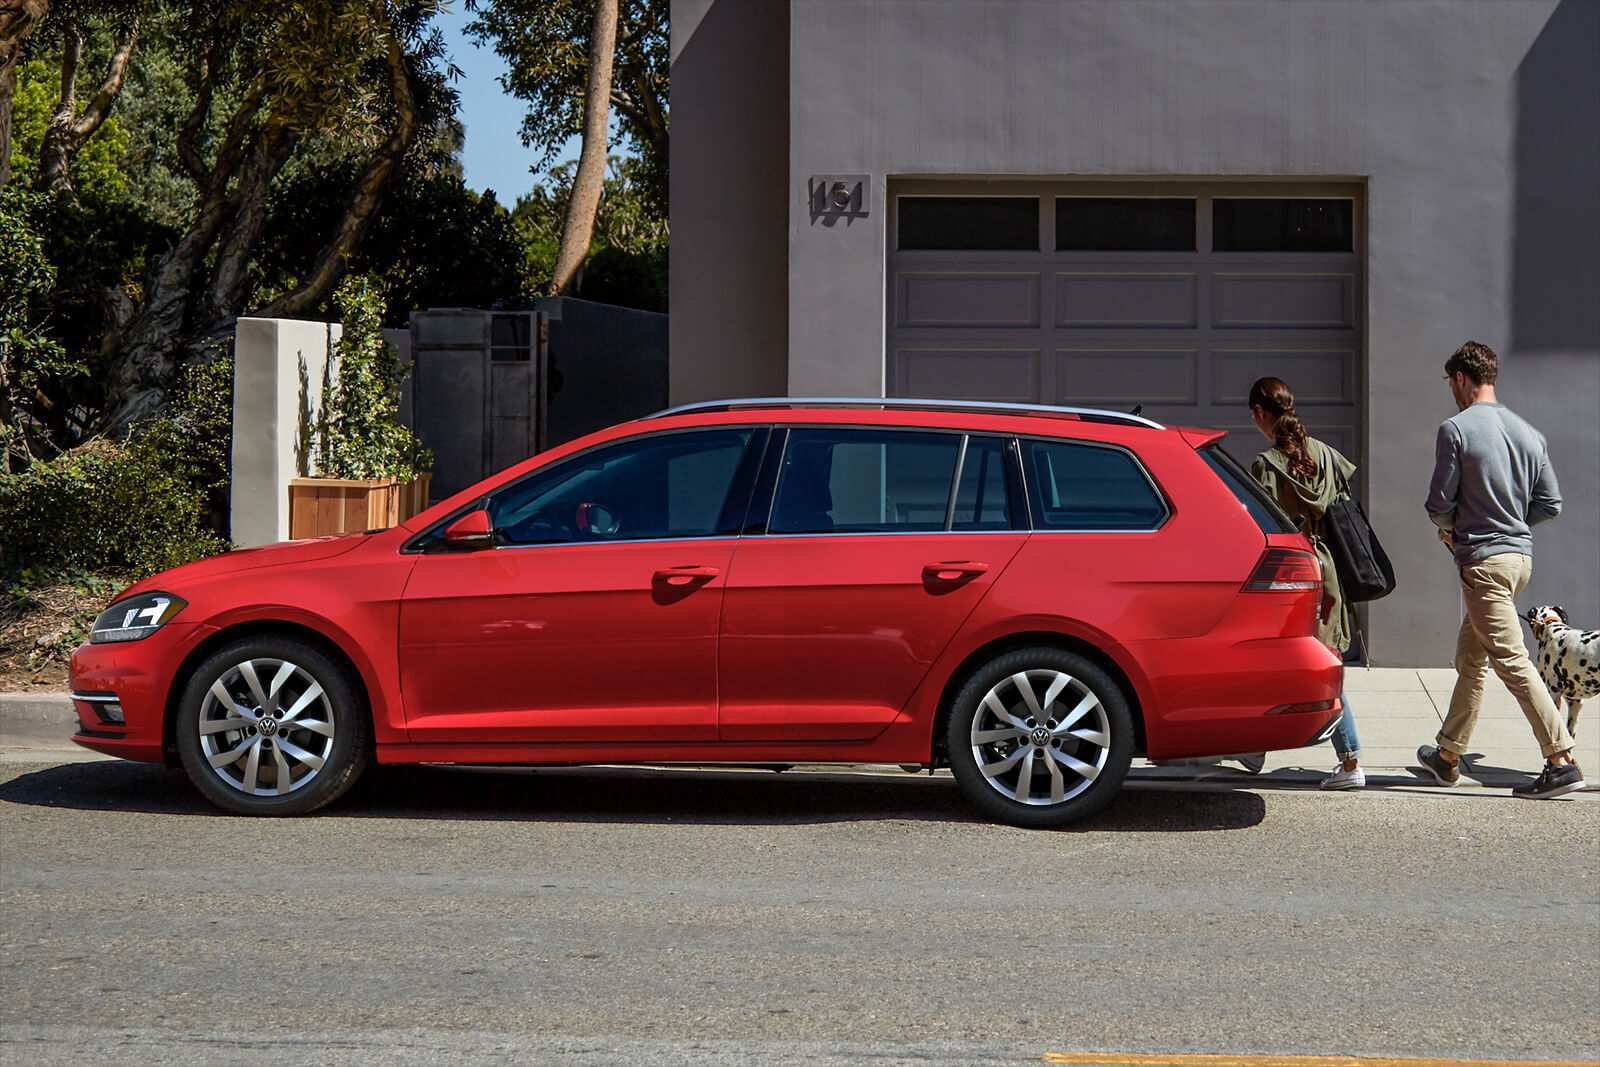 83 Best 2019 Vw Sportwagen Model